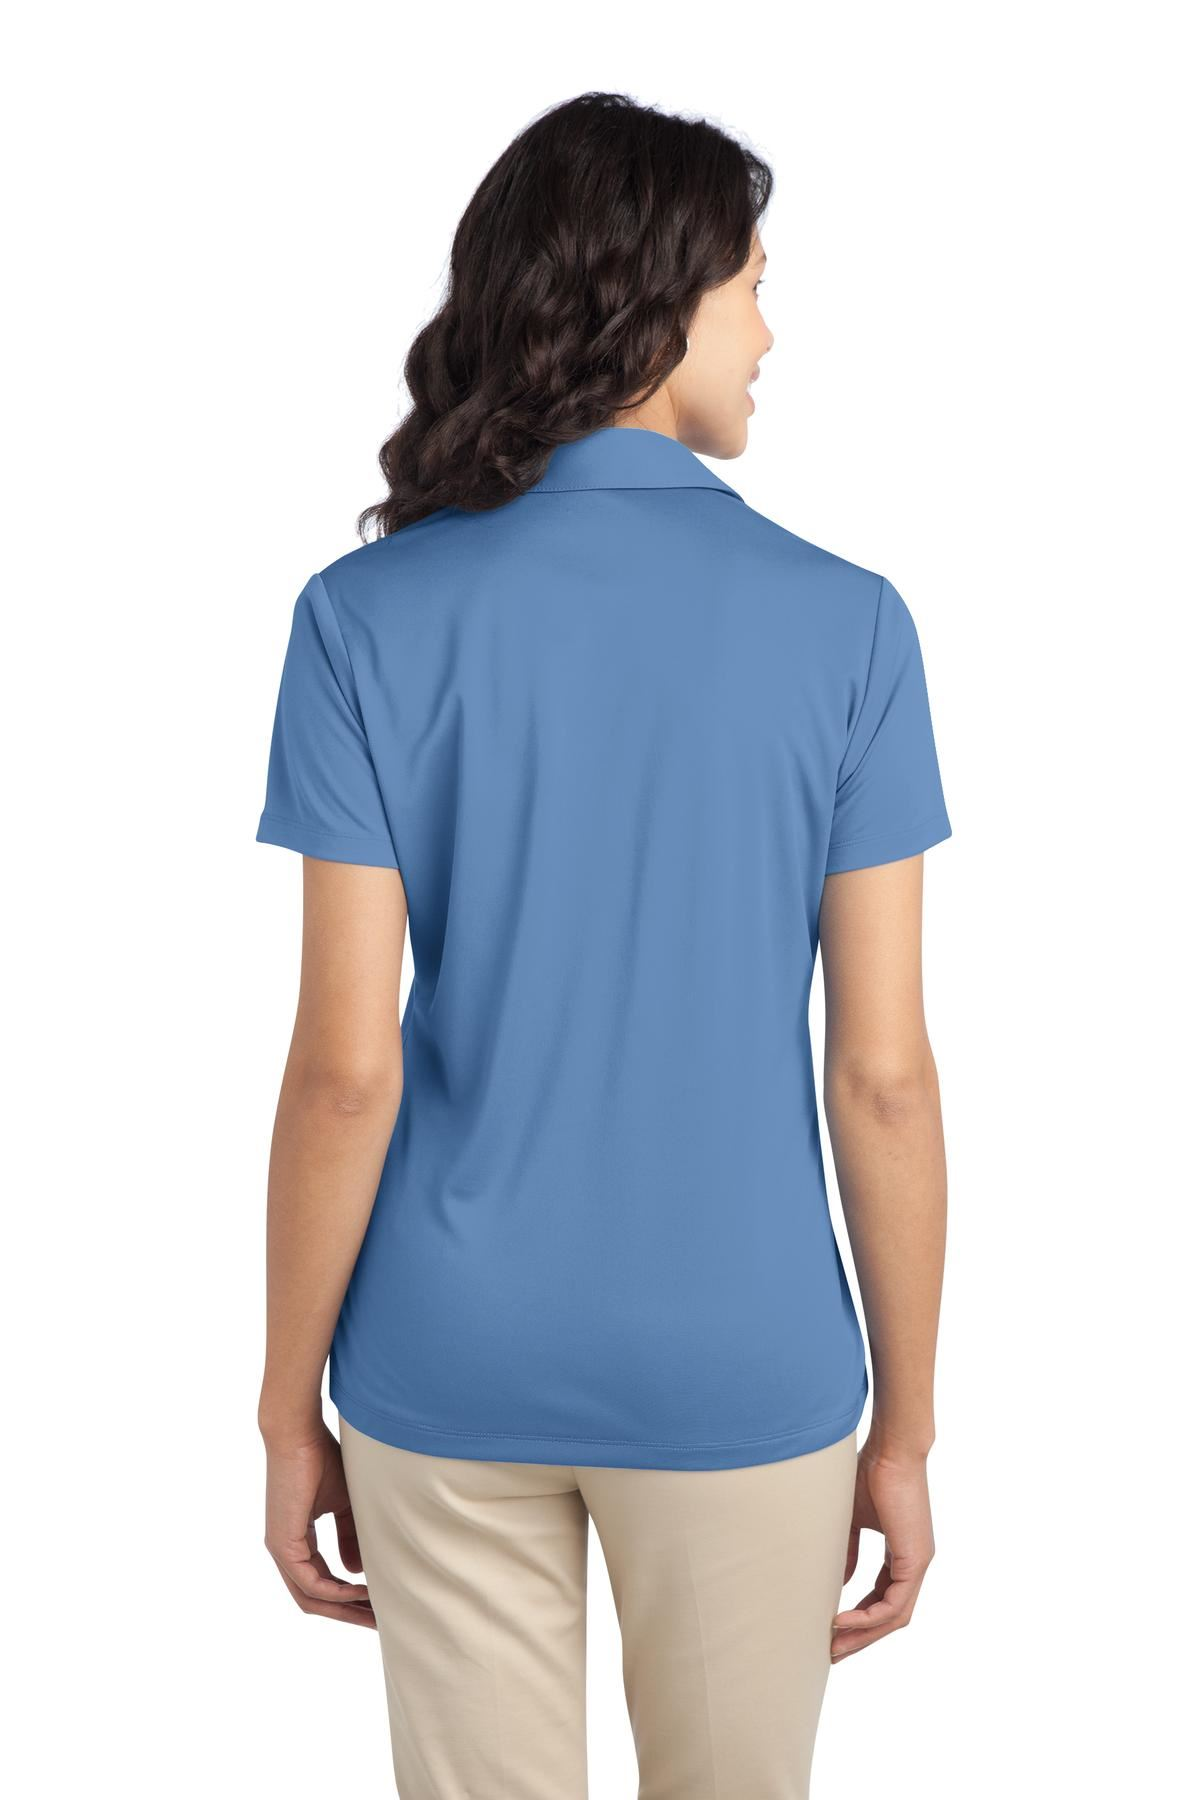 Port-Authority-Womens-Dri-Fit-SIlk-Touch-Performance-Polo-Golf-Shirt-M-L540 thumbnail 11